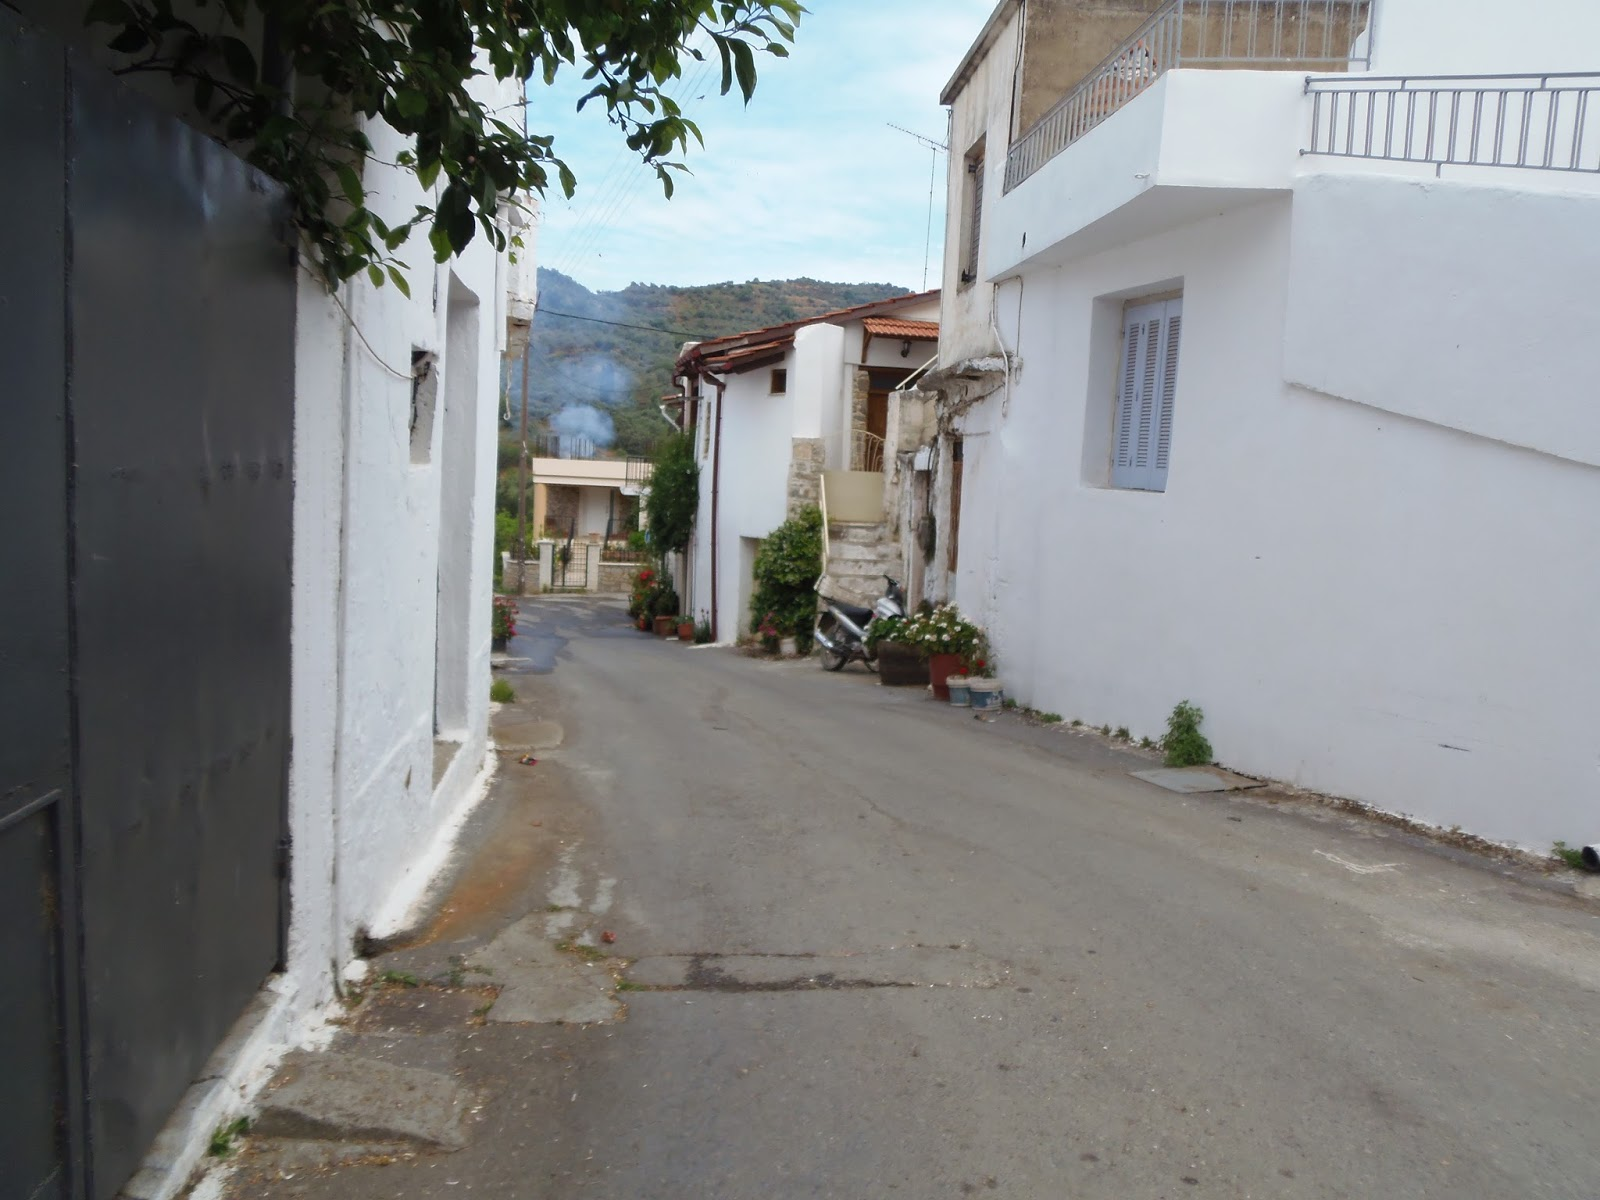 village, travel, traveling, walk, mountains, jeep safari, greek, greece, crete